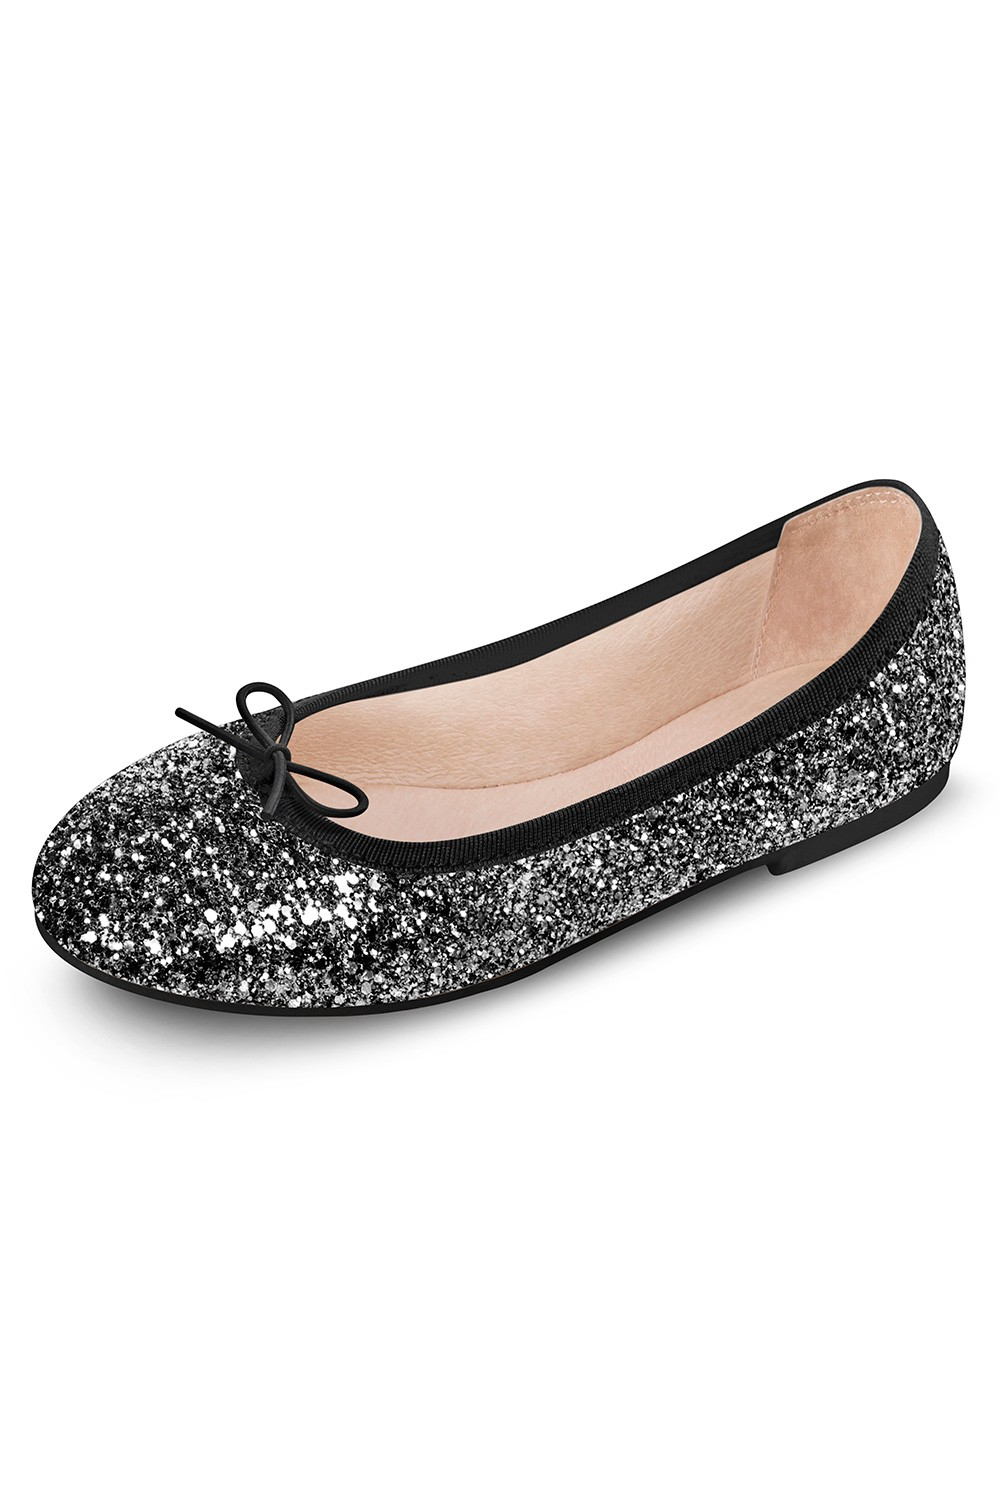 Sparkle - 8 A 13 Años Girls Fashion Shoes